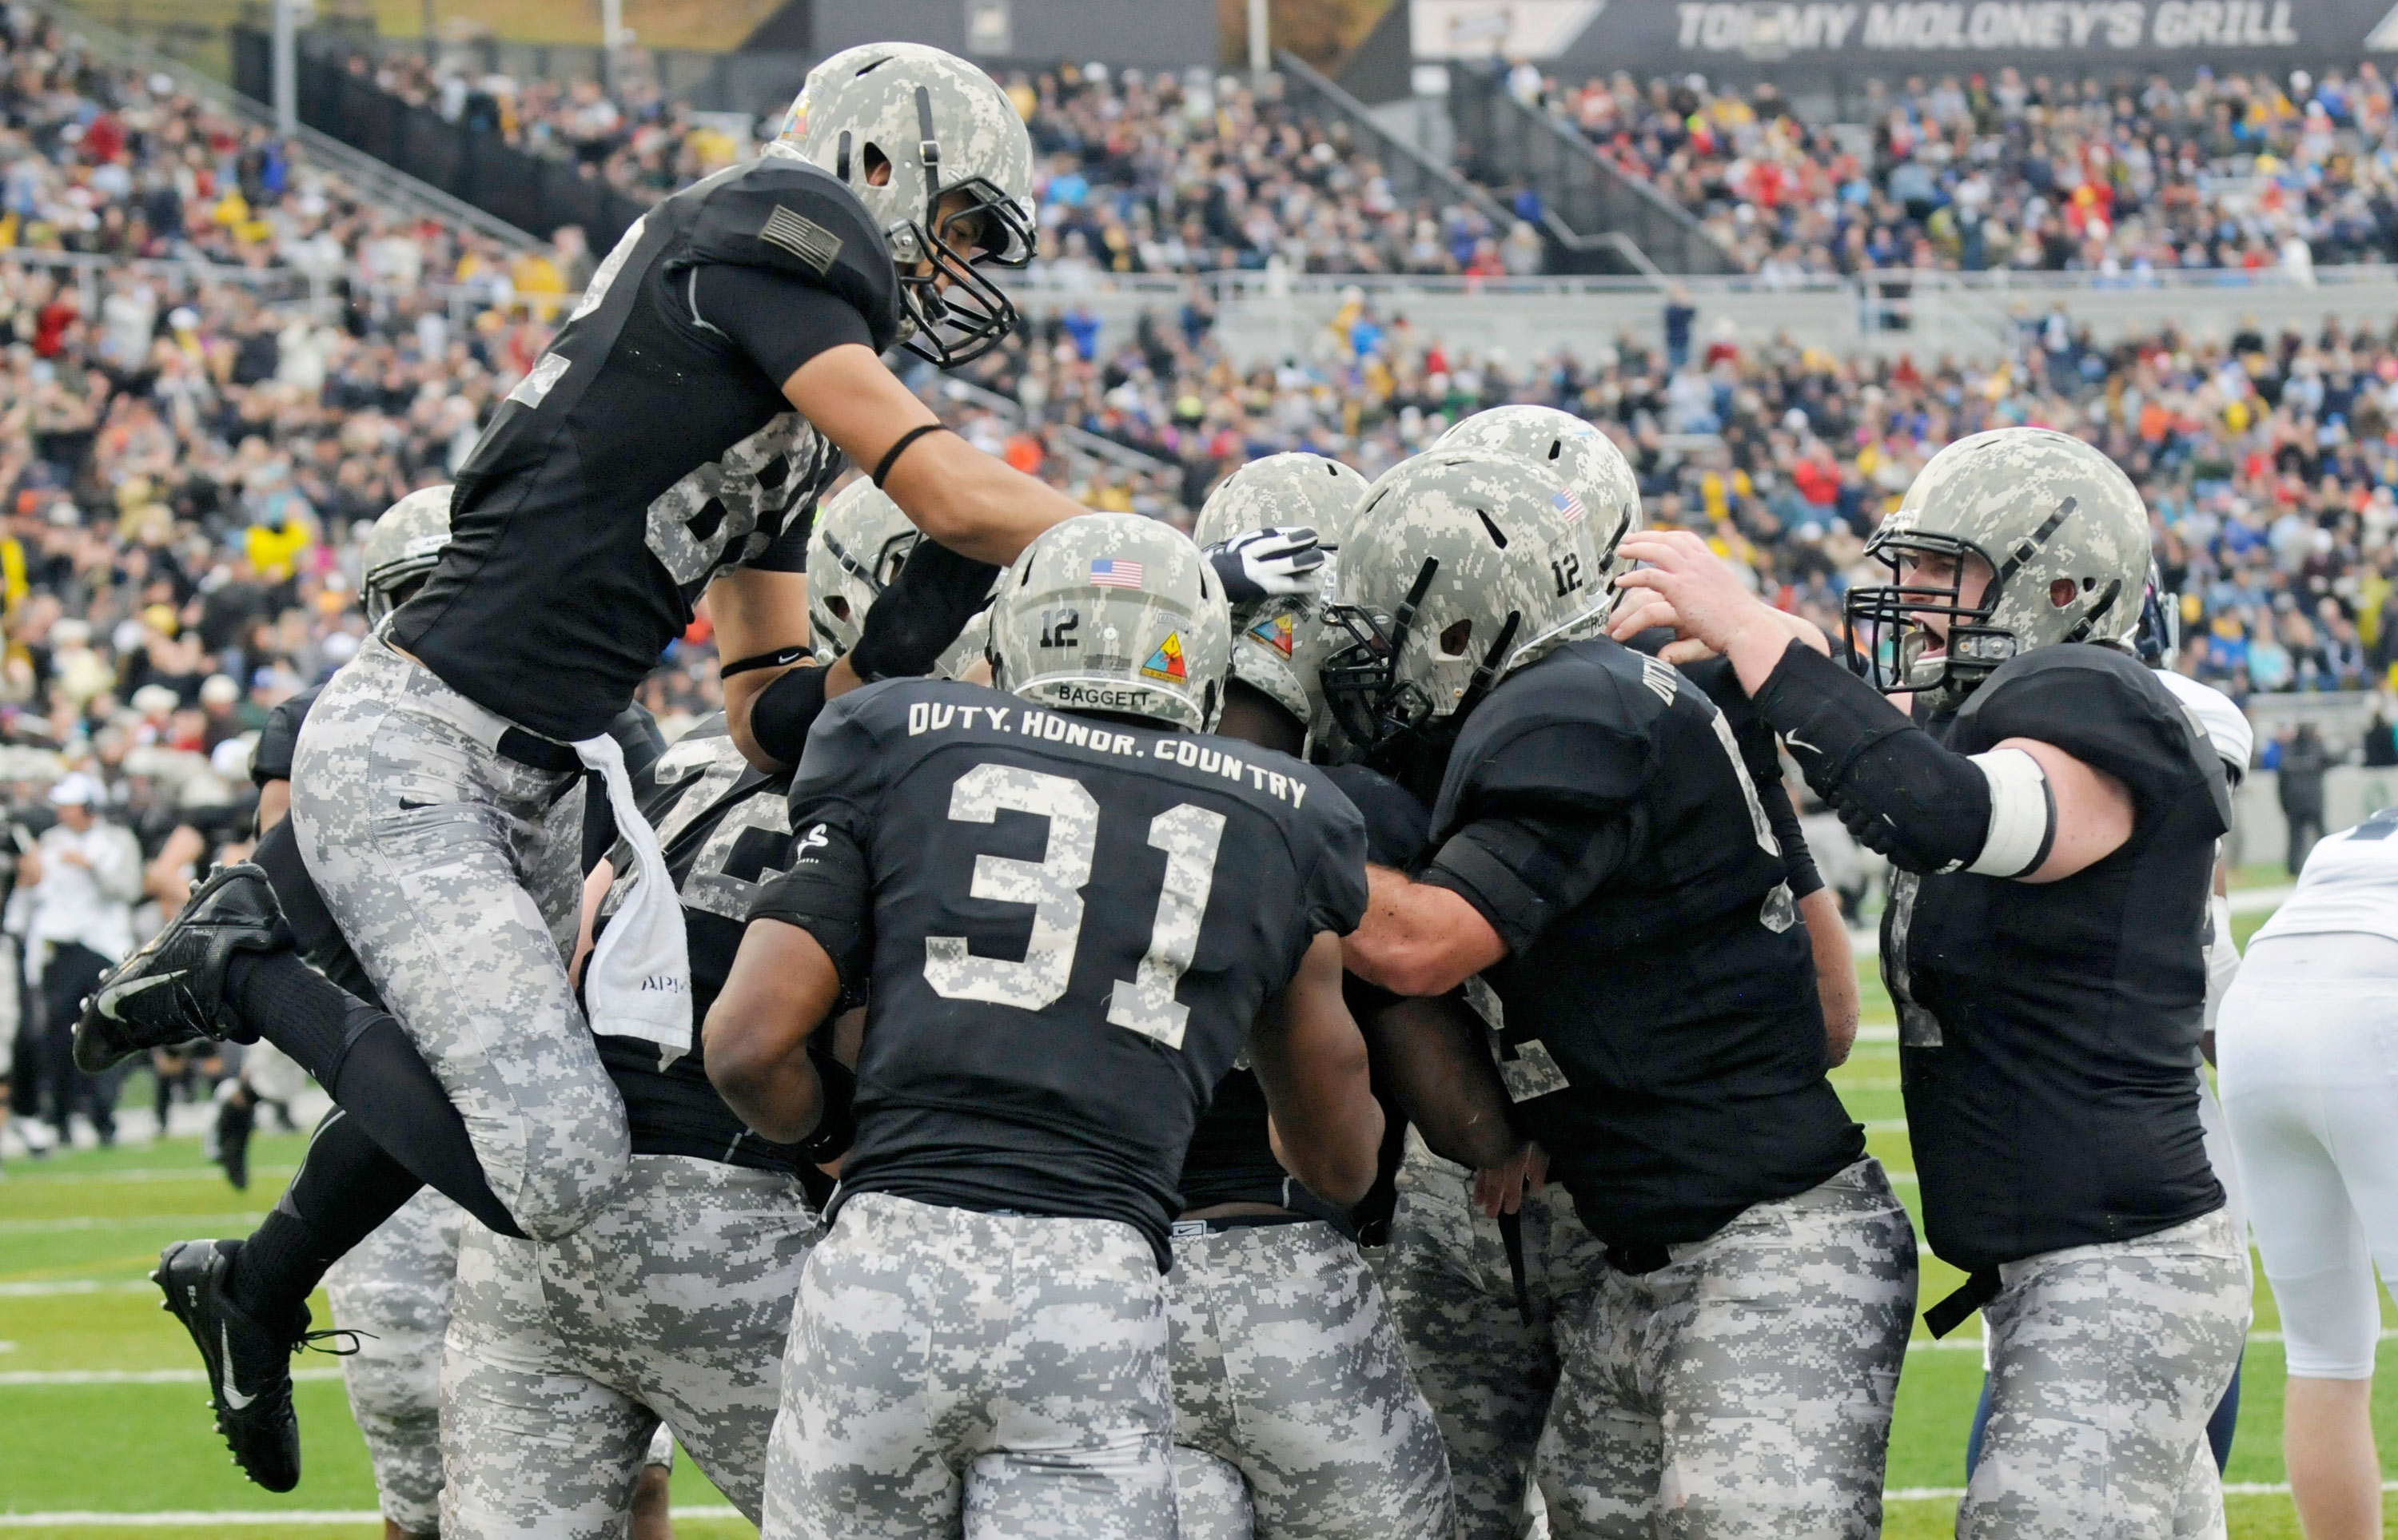 Army players celebrate a Larry Dixon touchdown against Rice during the first half of an NCAA college football game in West Point, N.Y. (AP Photo/Hans Pennink)